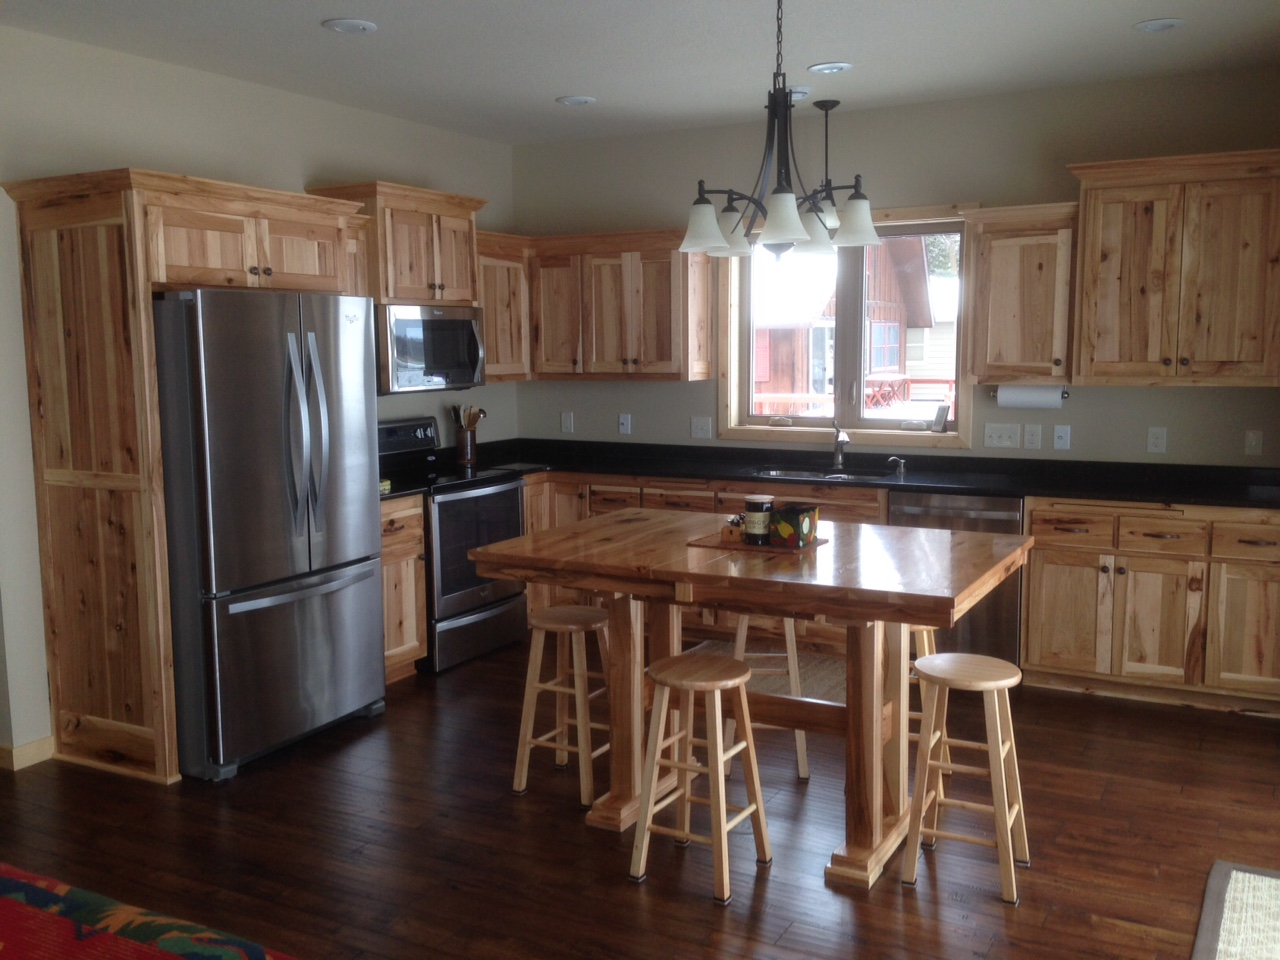 pictures of custom kitchen cabinets cabinet patterns cabinetry and countertops minneapolis